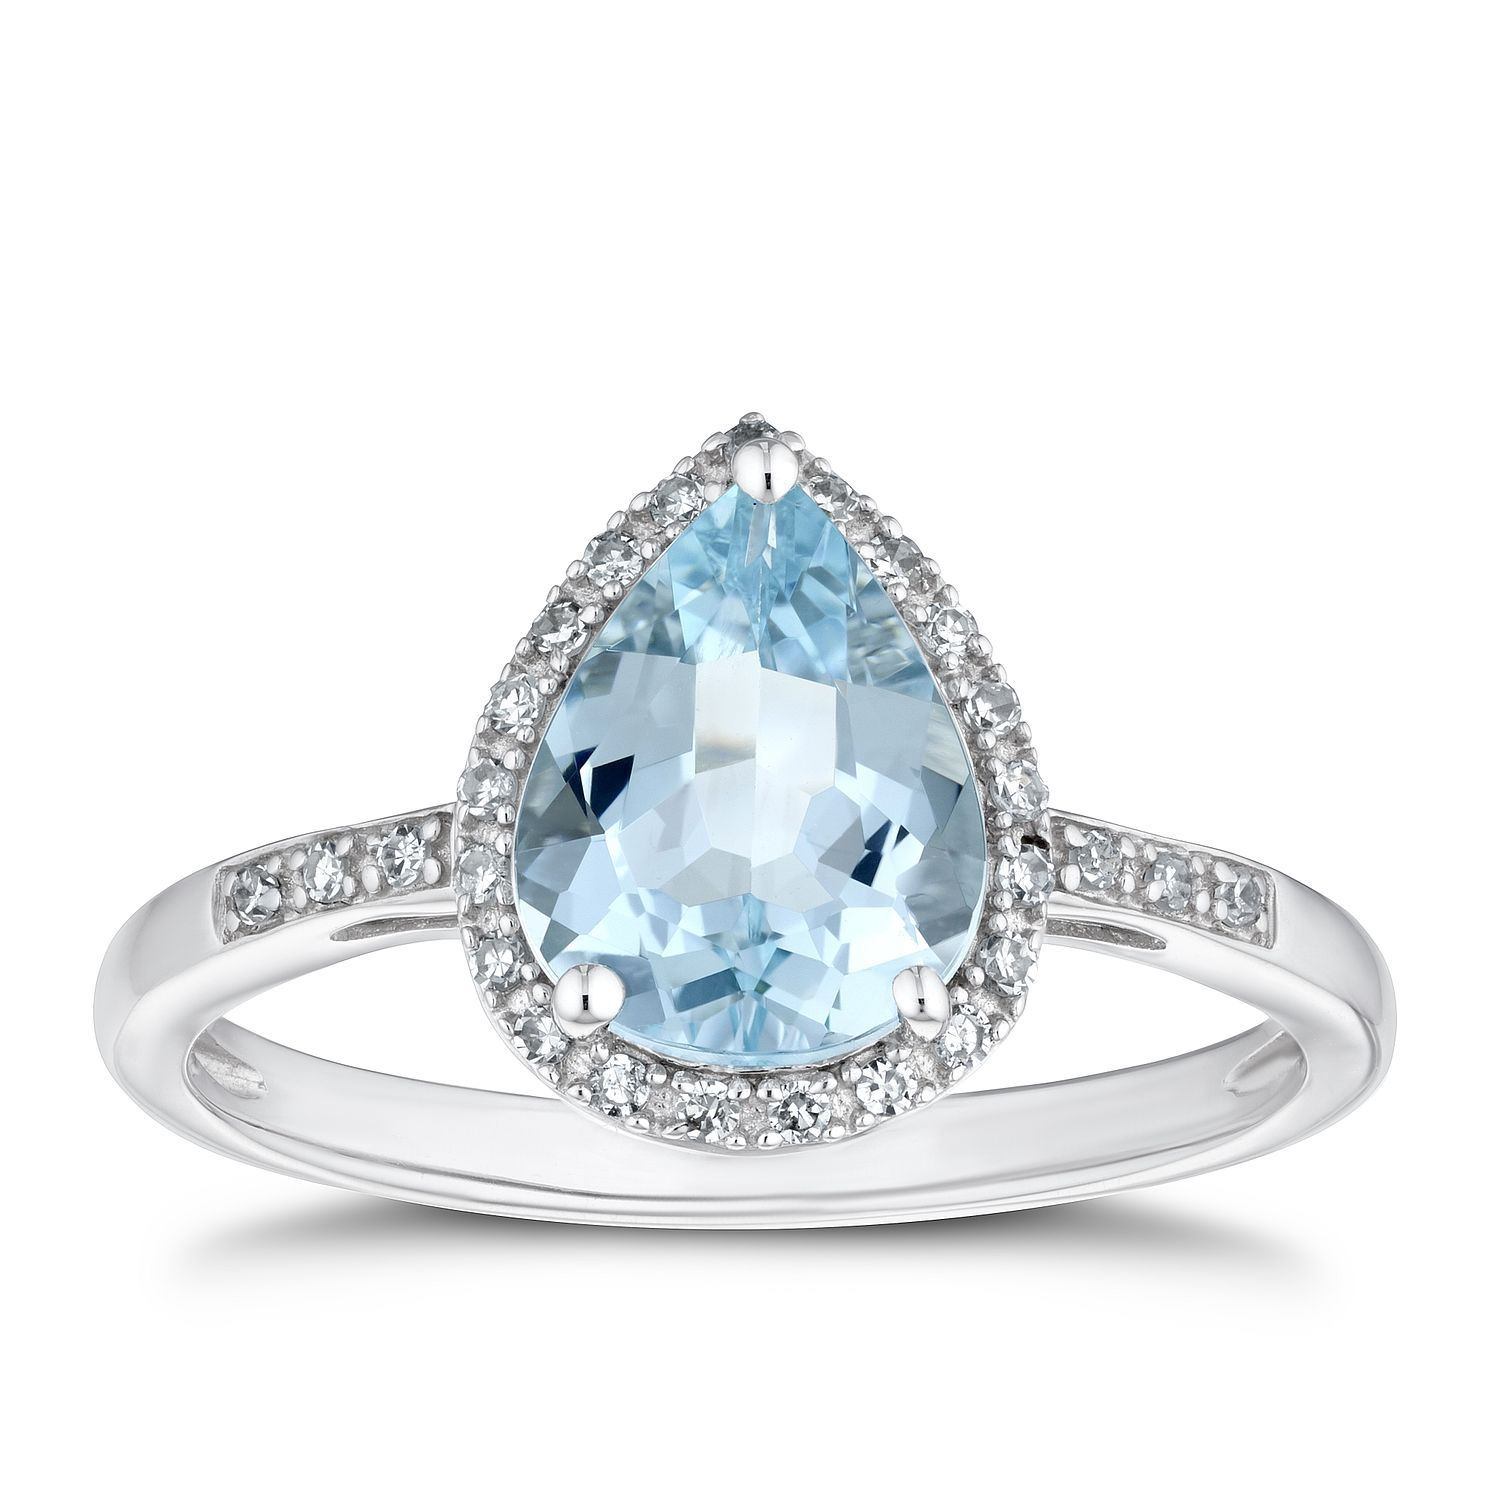 9ct White Gold Aquamarine & 0.10ct Diamond Pear Ring - Product number 4271114